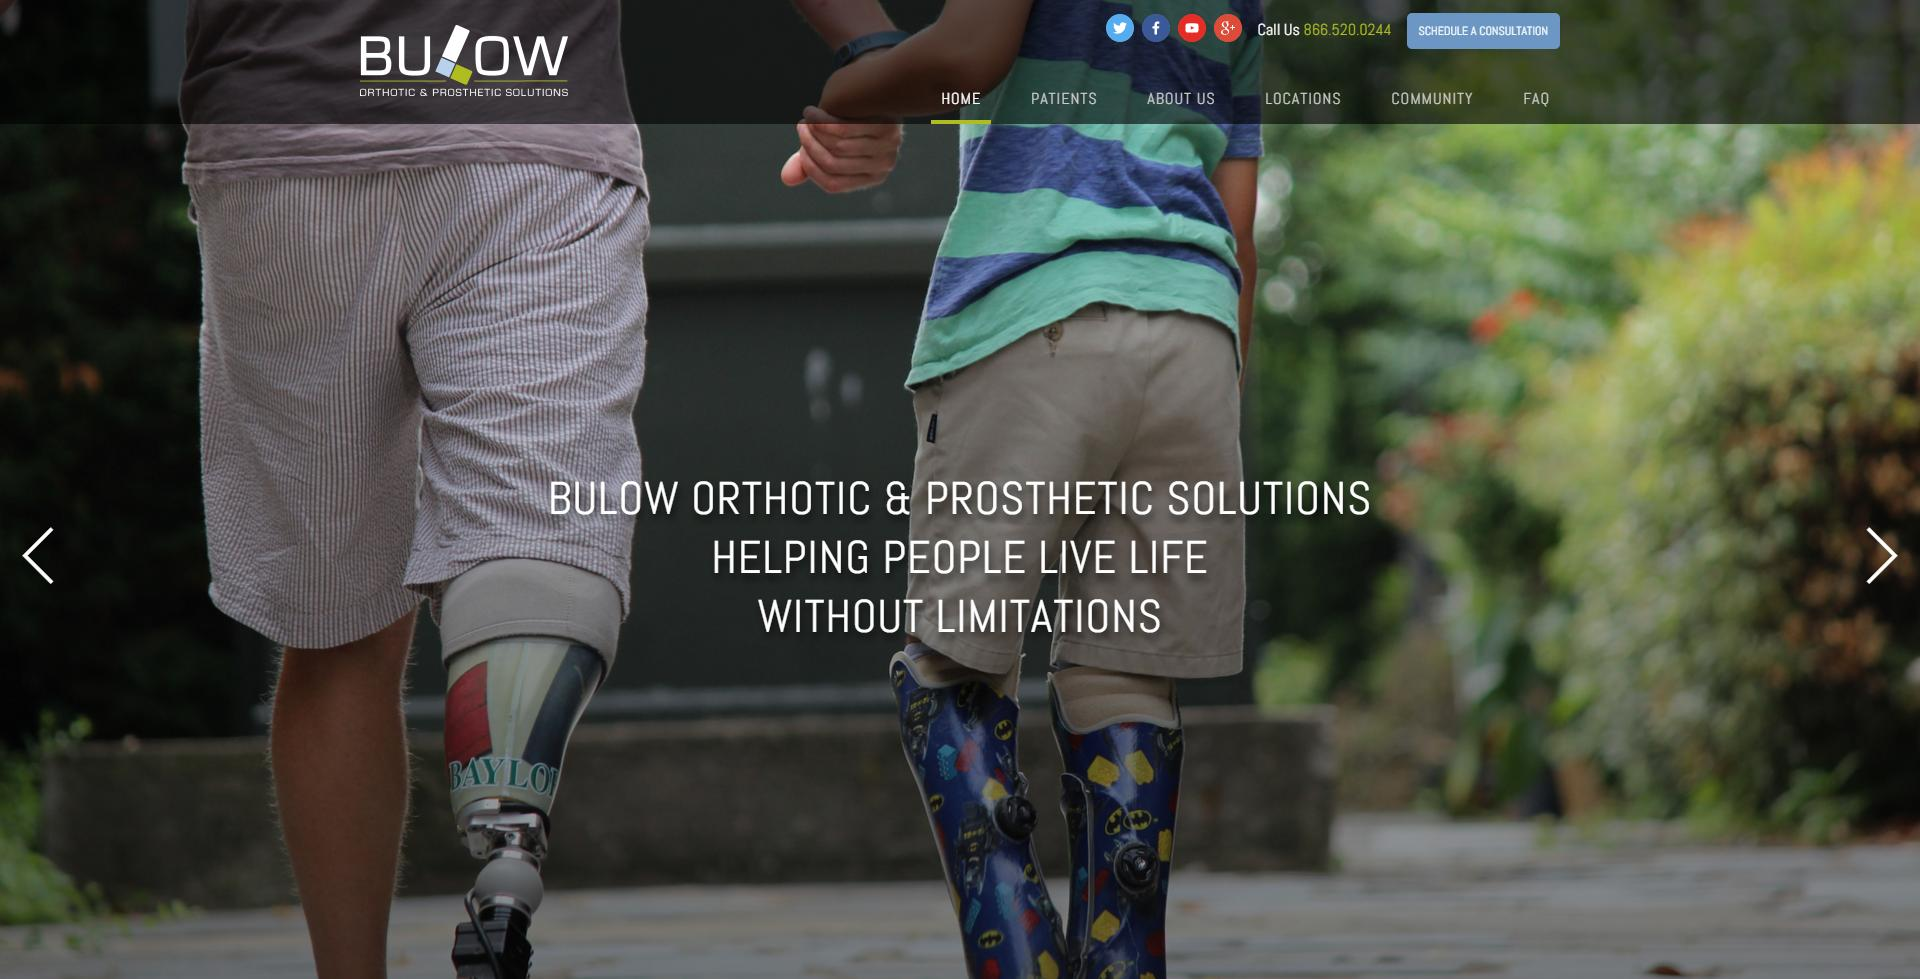 Bulow Orthotic & Prosthetic Solutions